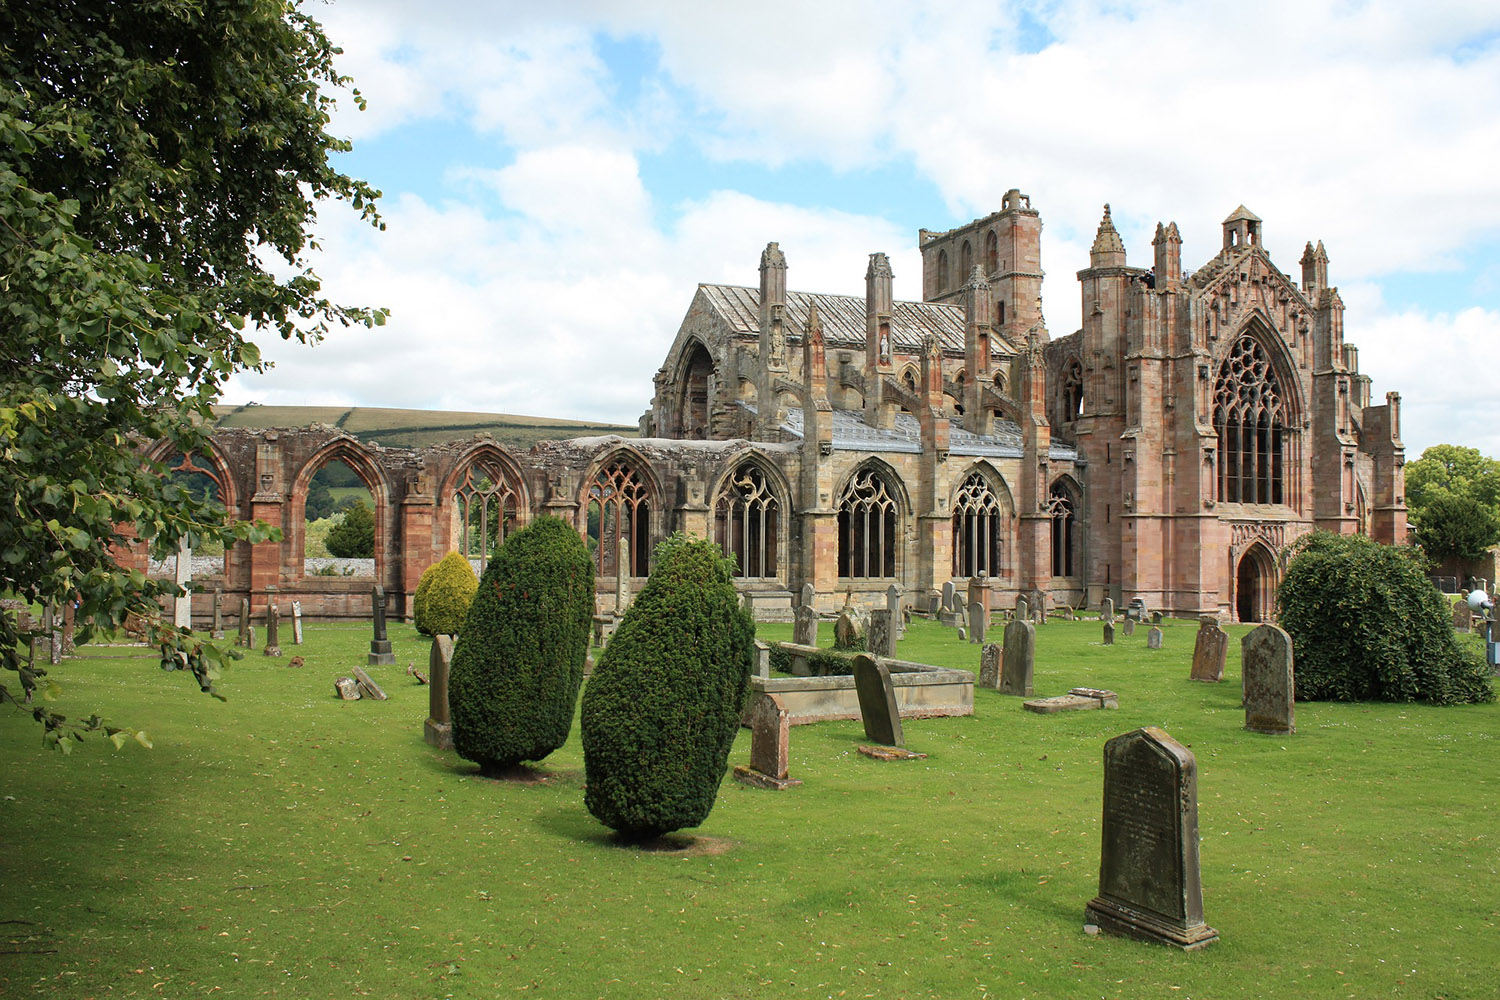 Melrose Abbey is located in the Scottish Borders and is a highlight of our border raiders tour of Scotland